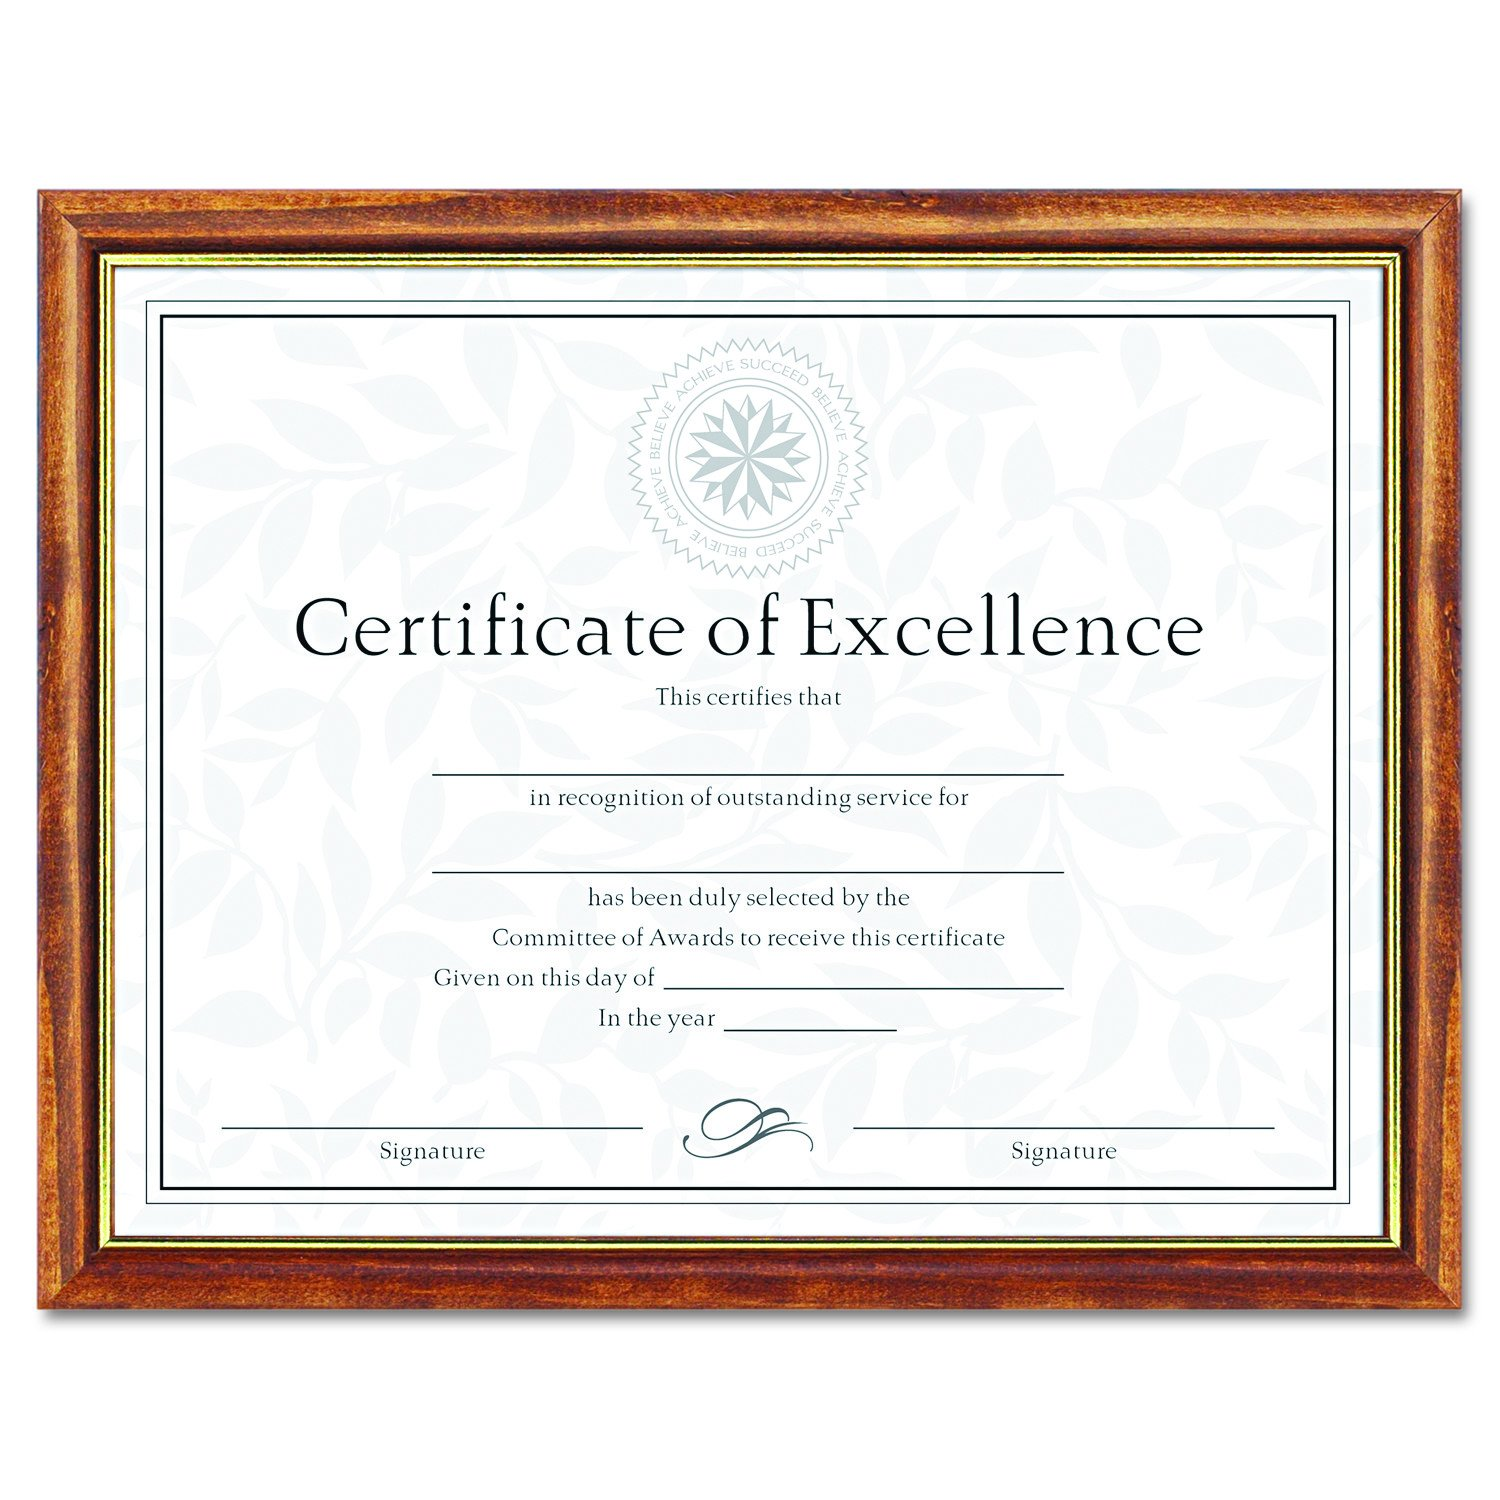 Amazon dax two tone documentdiploma frame wood 85 x 11 amazon dax two tone documentdiploma frame wood 85 x 11 inches black with gold leaf trim n17981bt office products xflitez Choice Image